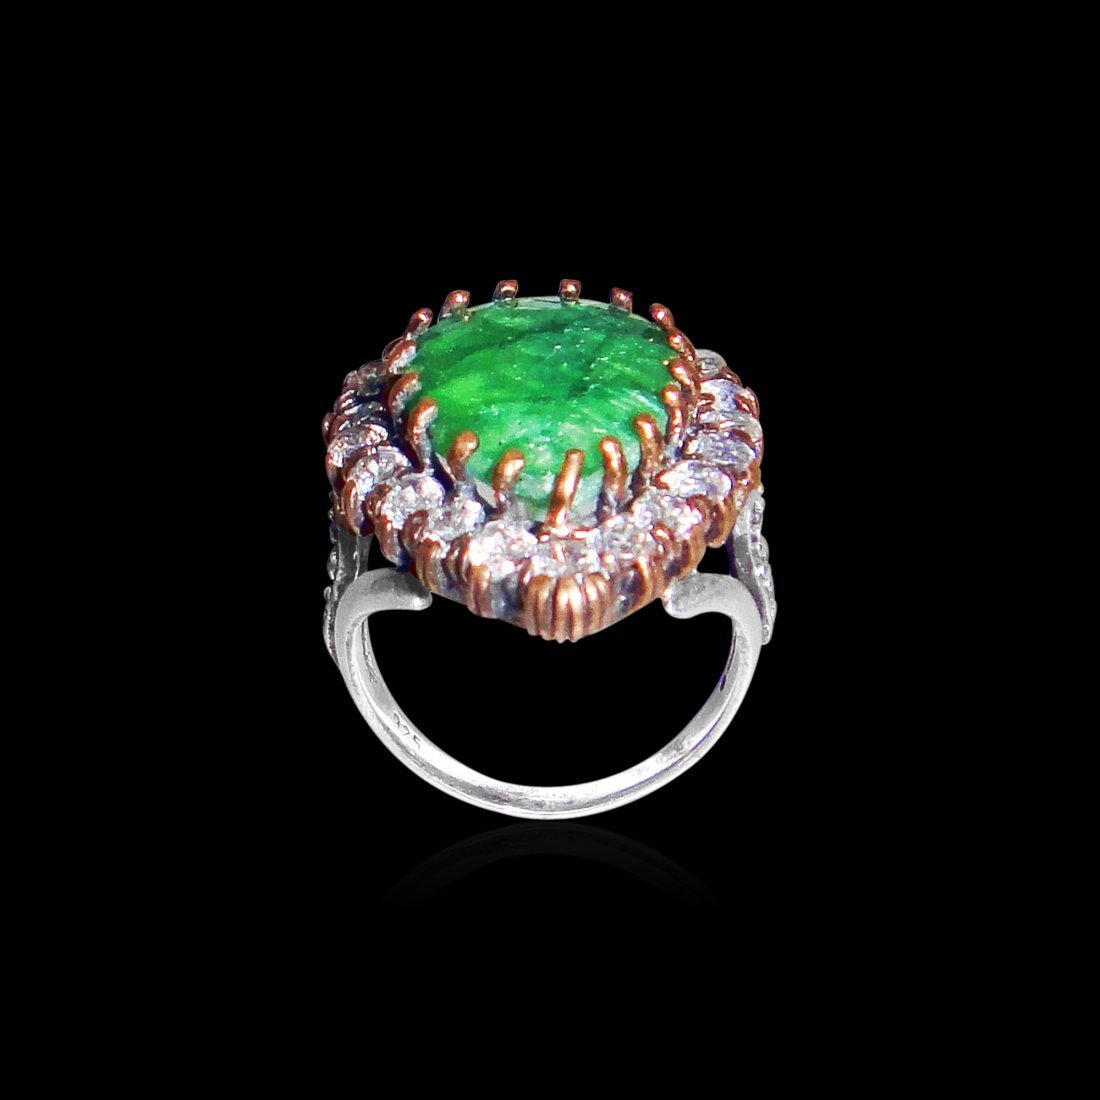 An Emerald Oval Shaped Zircon Sterling Silver Ring